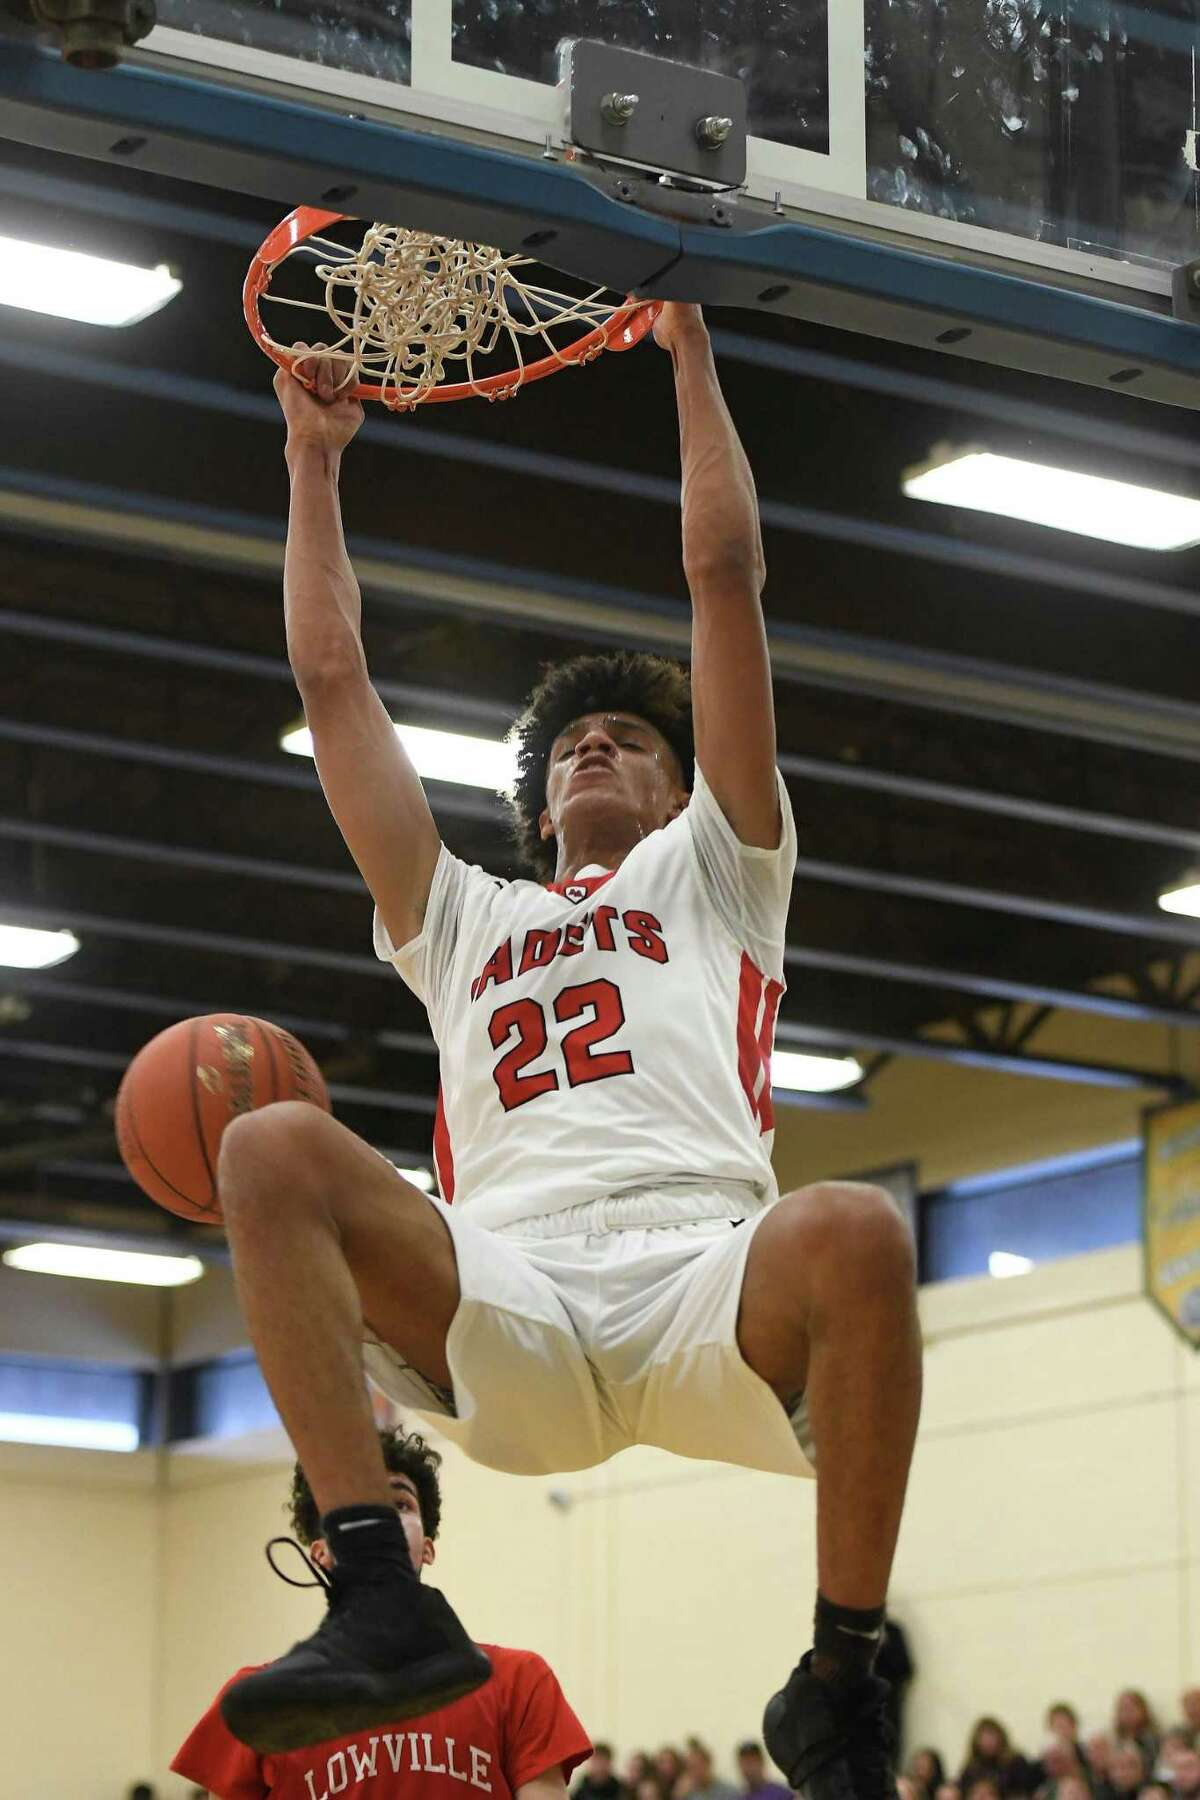 Albany Academy's Andre Jackson, now at UConn, has the potential to be a freshman star.